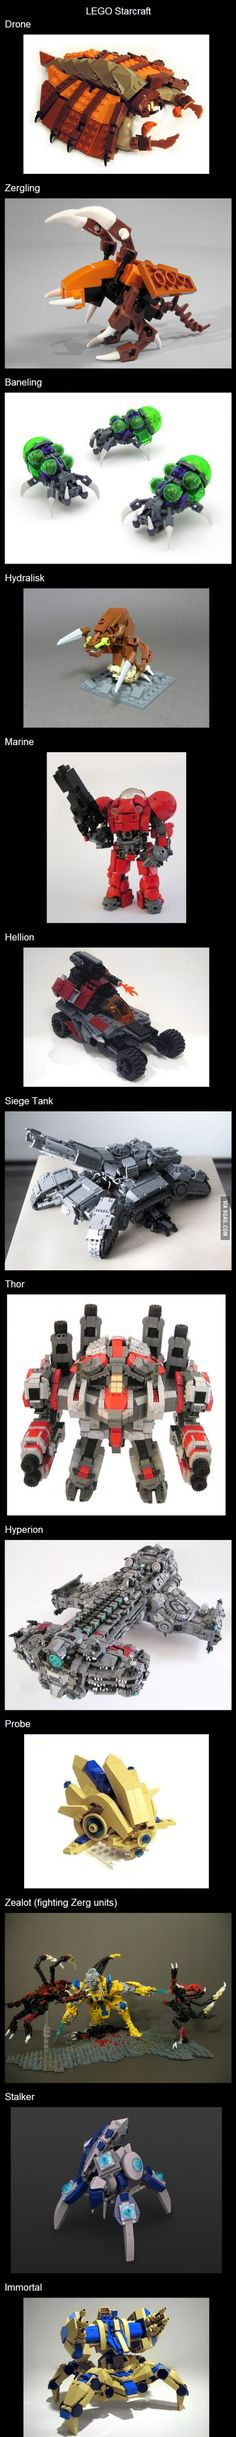 LEGO Starcraft just shut up and take my crystals